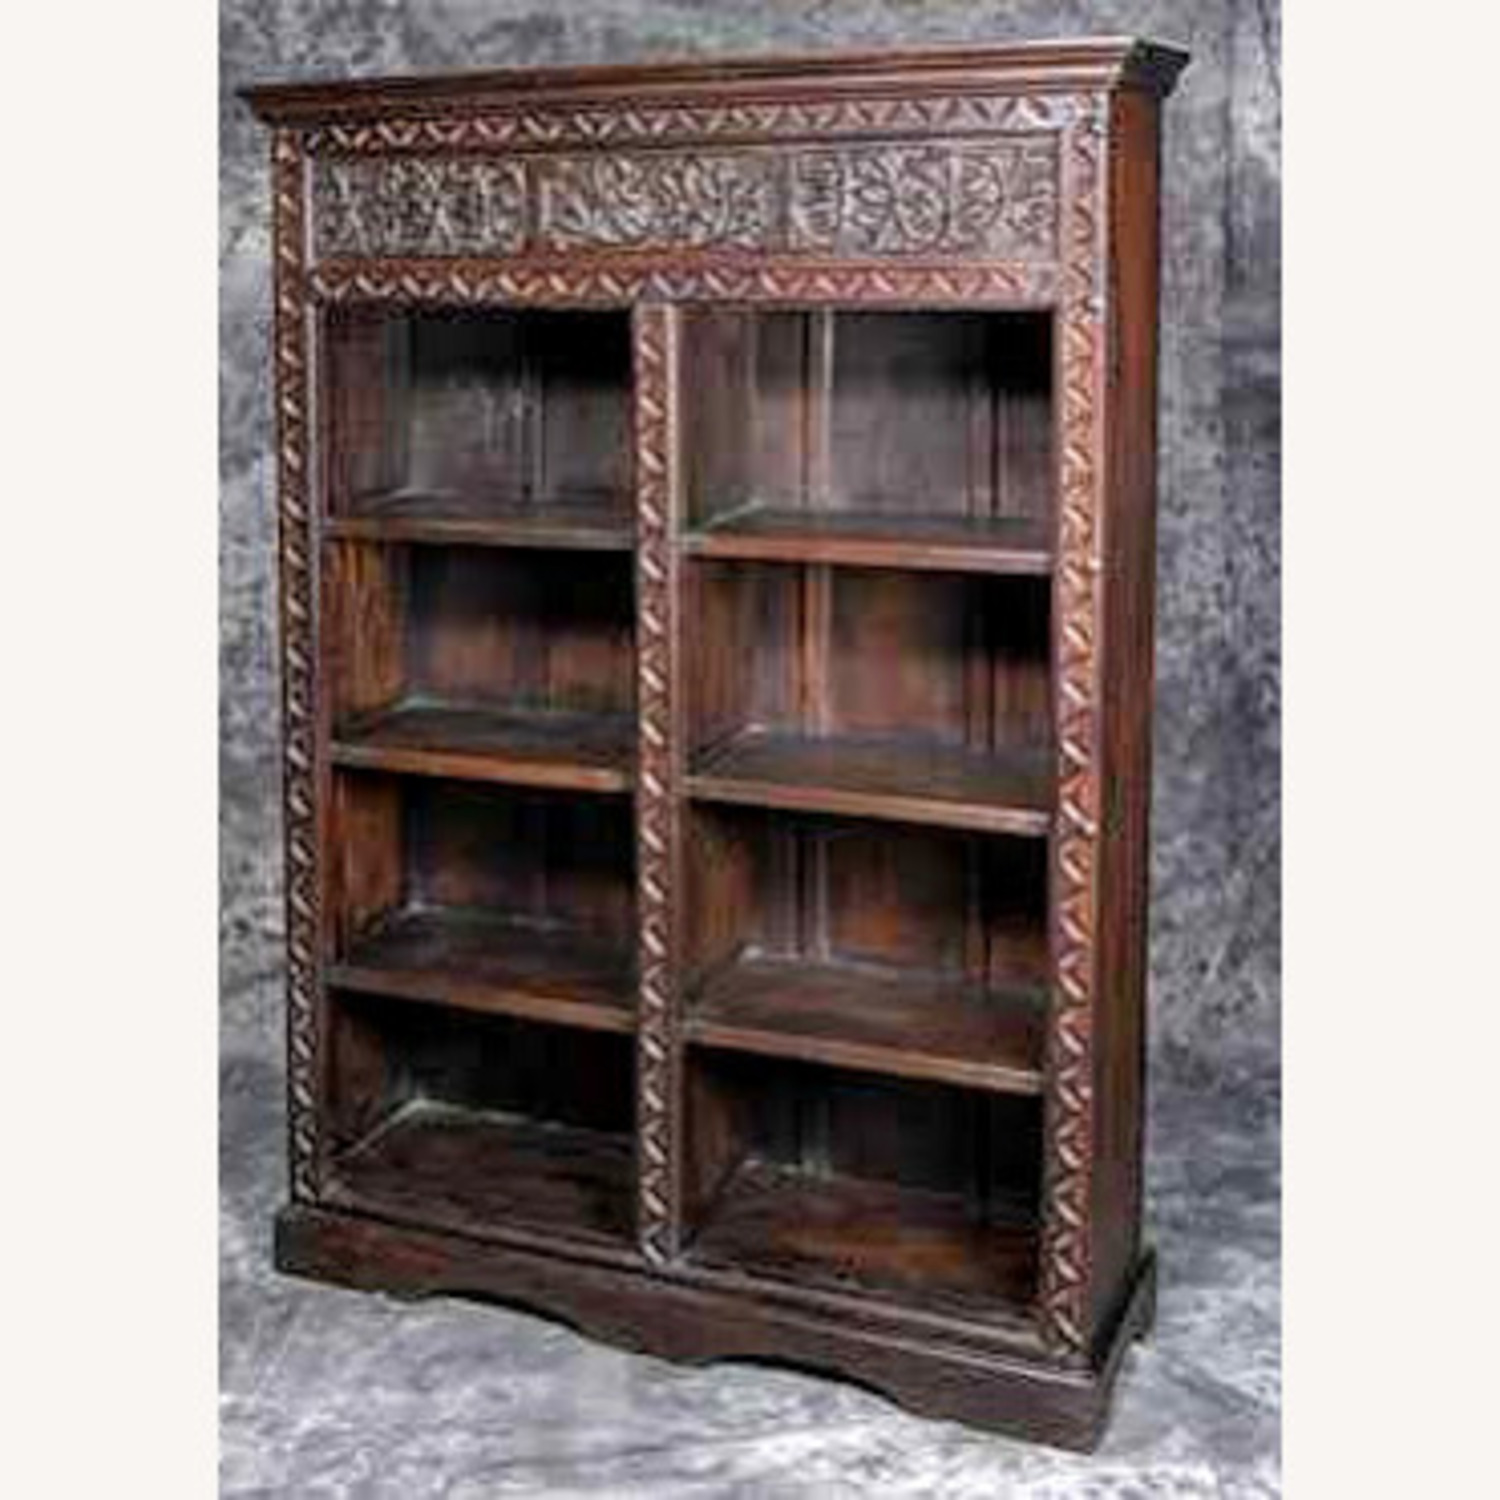 Exquisive Hand Cavred Bookcase - image-1